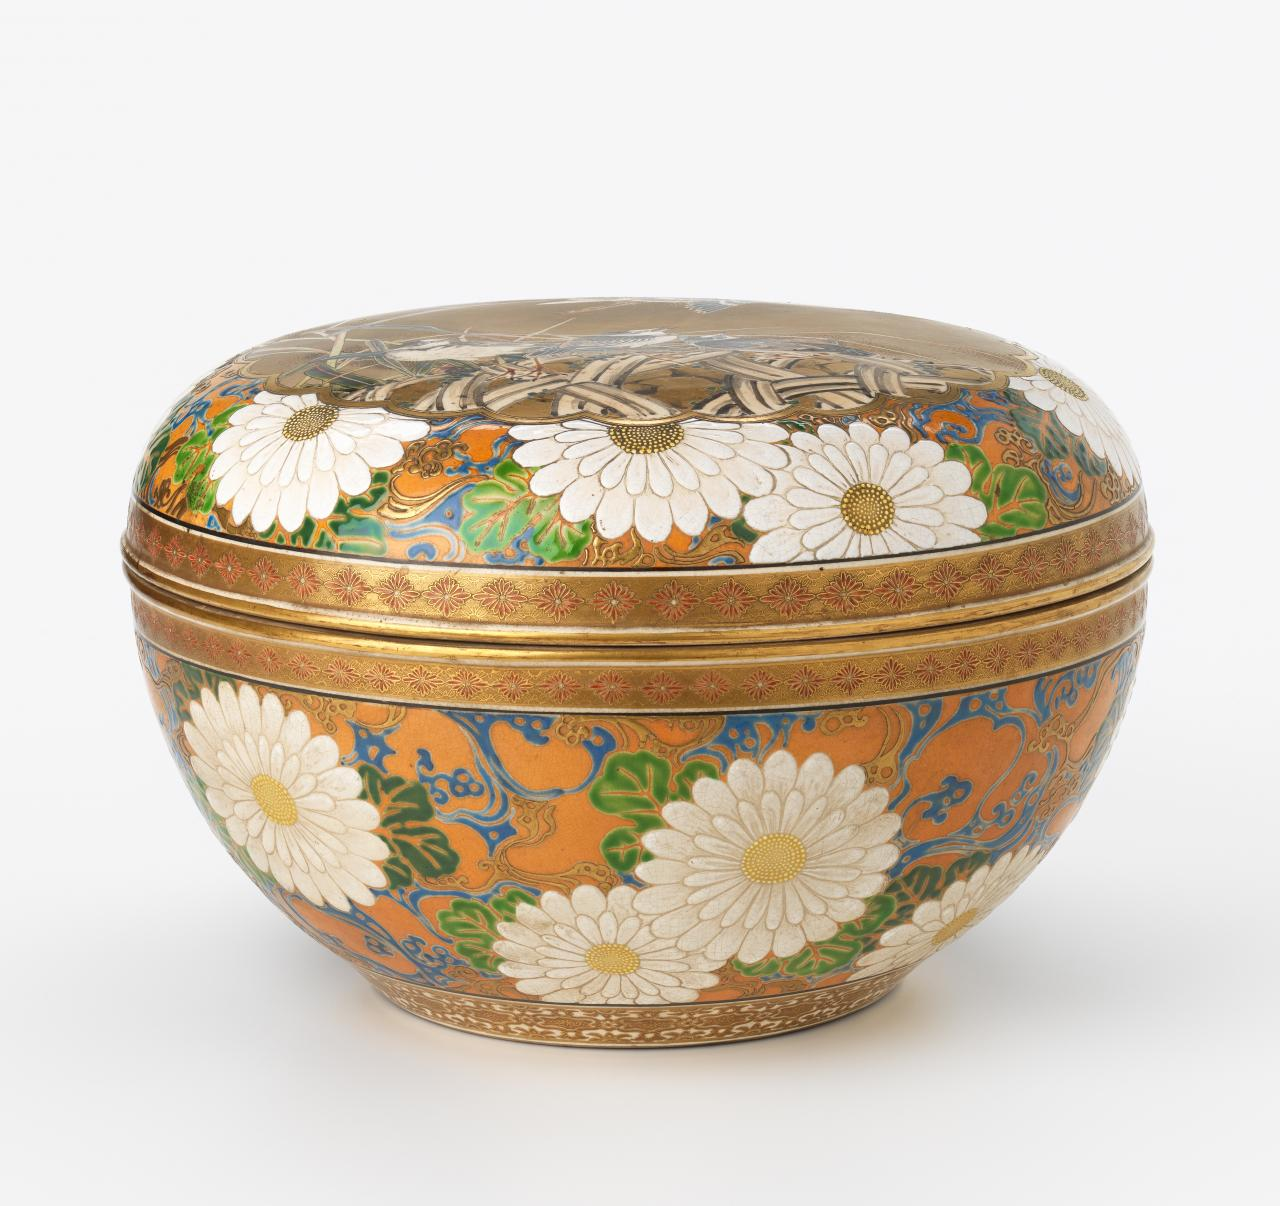 Large lidded bowl with sparrows and chrysanthemums